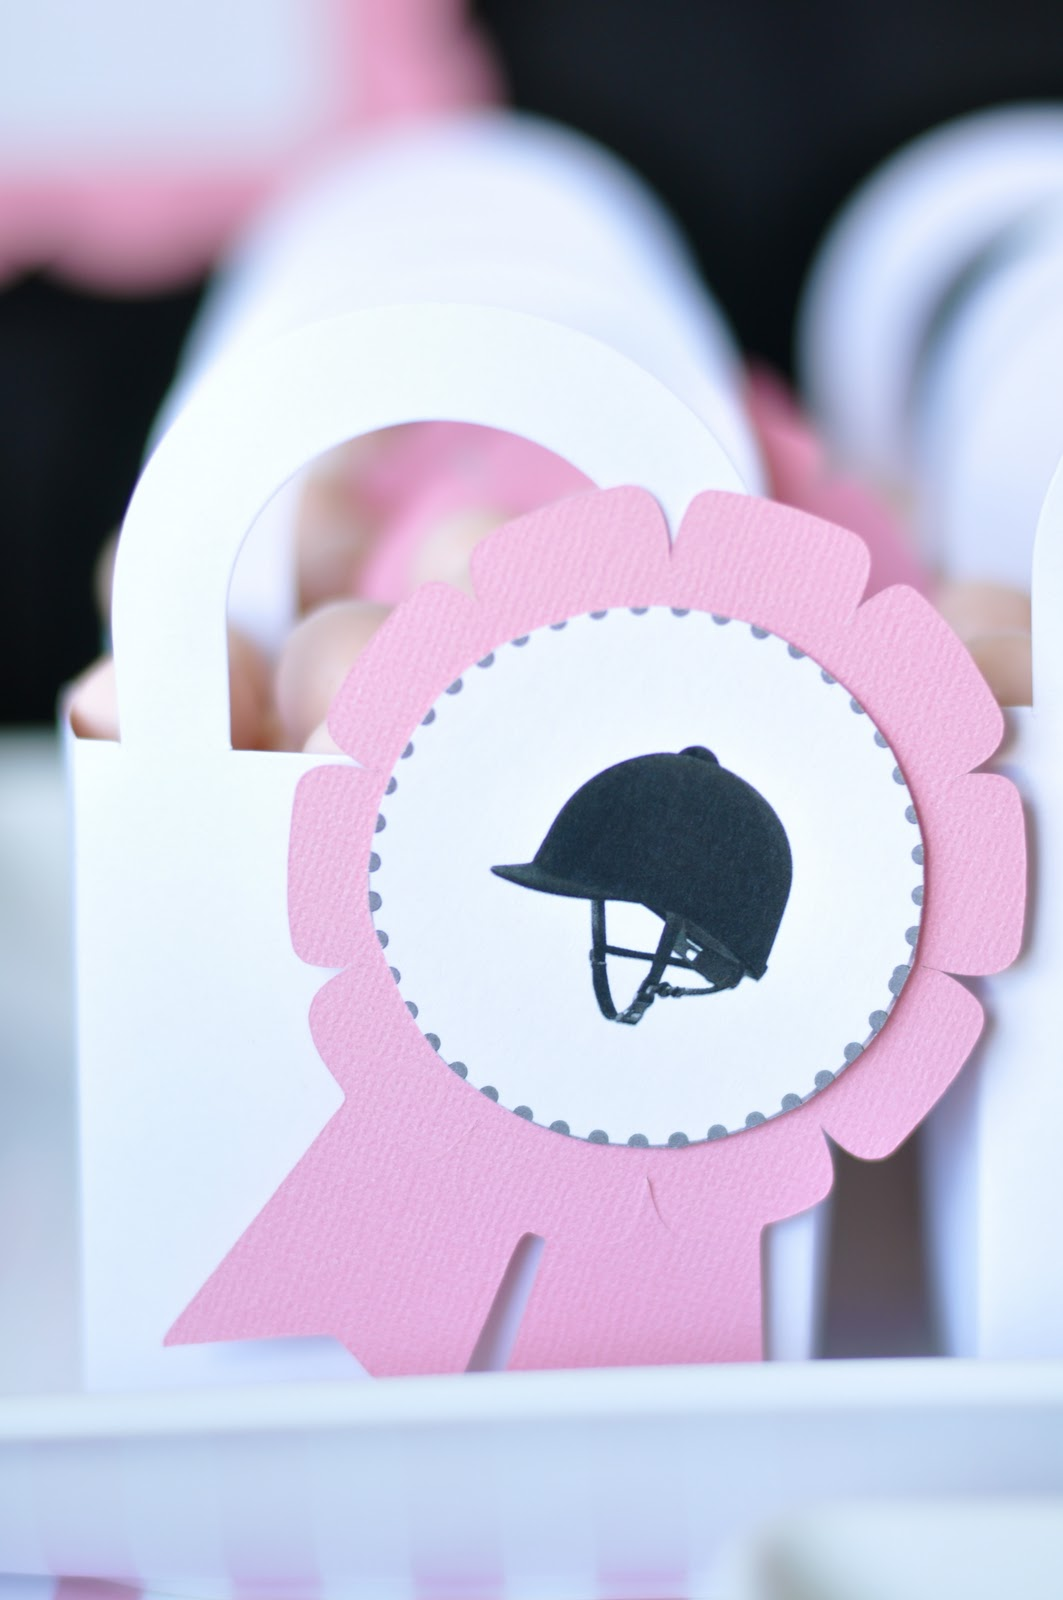 MY PARTIES} english horseback riding party - Creative Juice